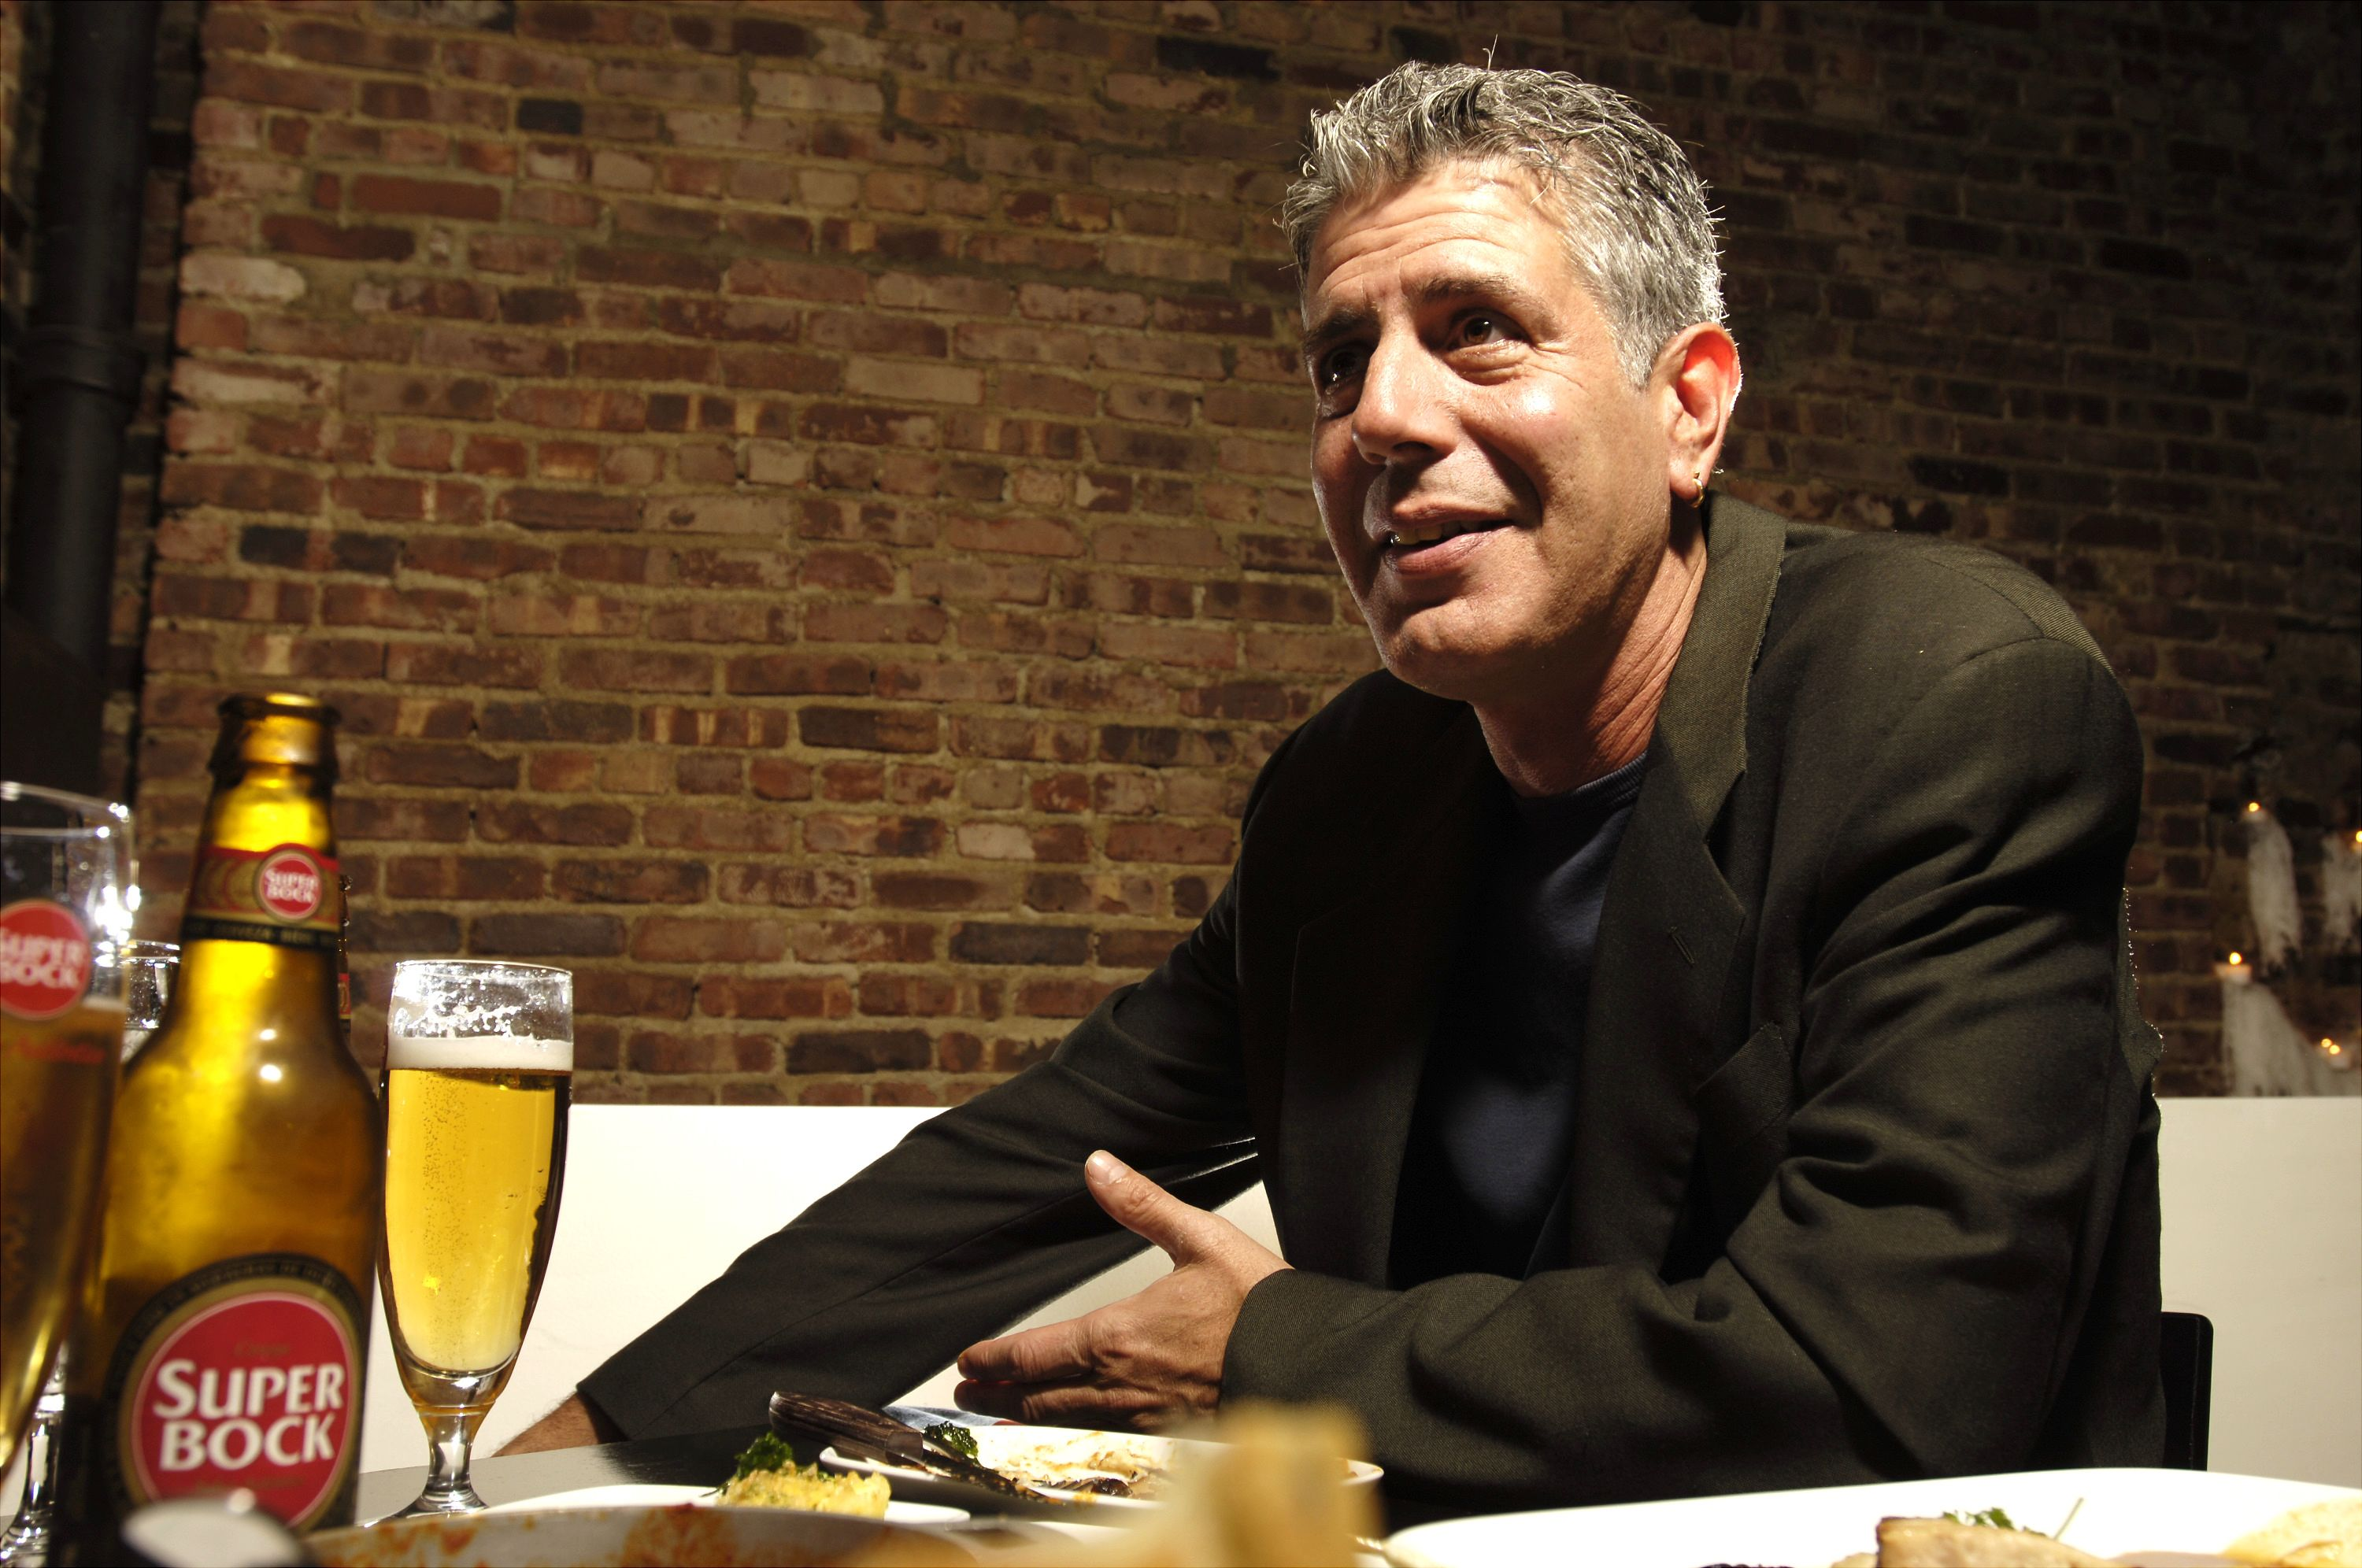 How To Stream Anthony Bourdain - Where to Watch Parts